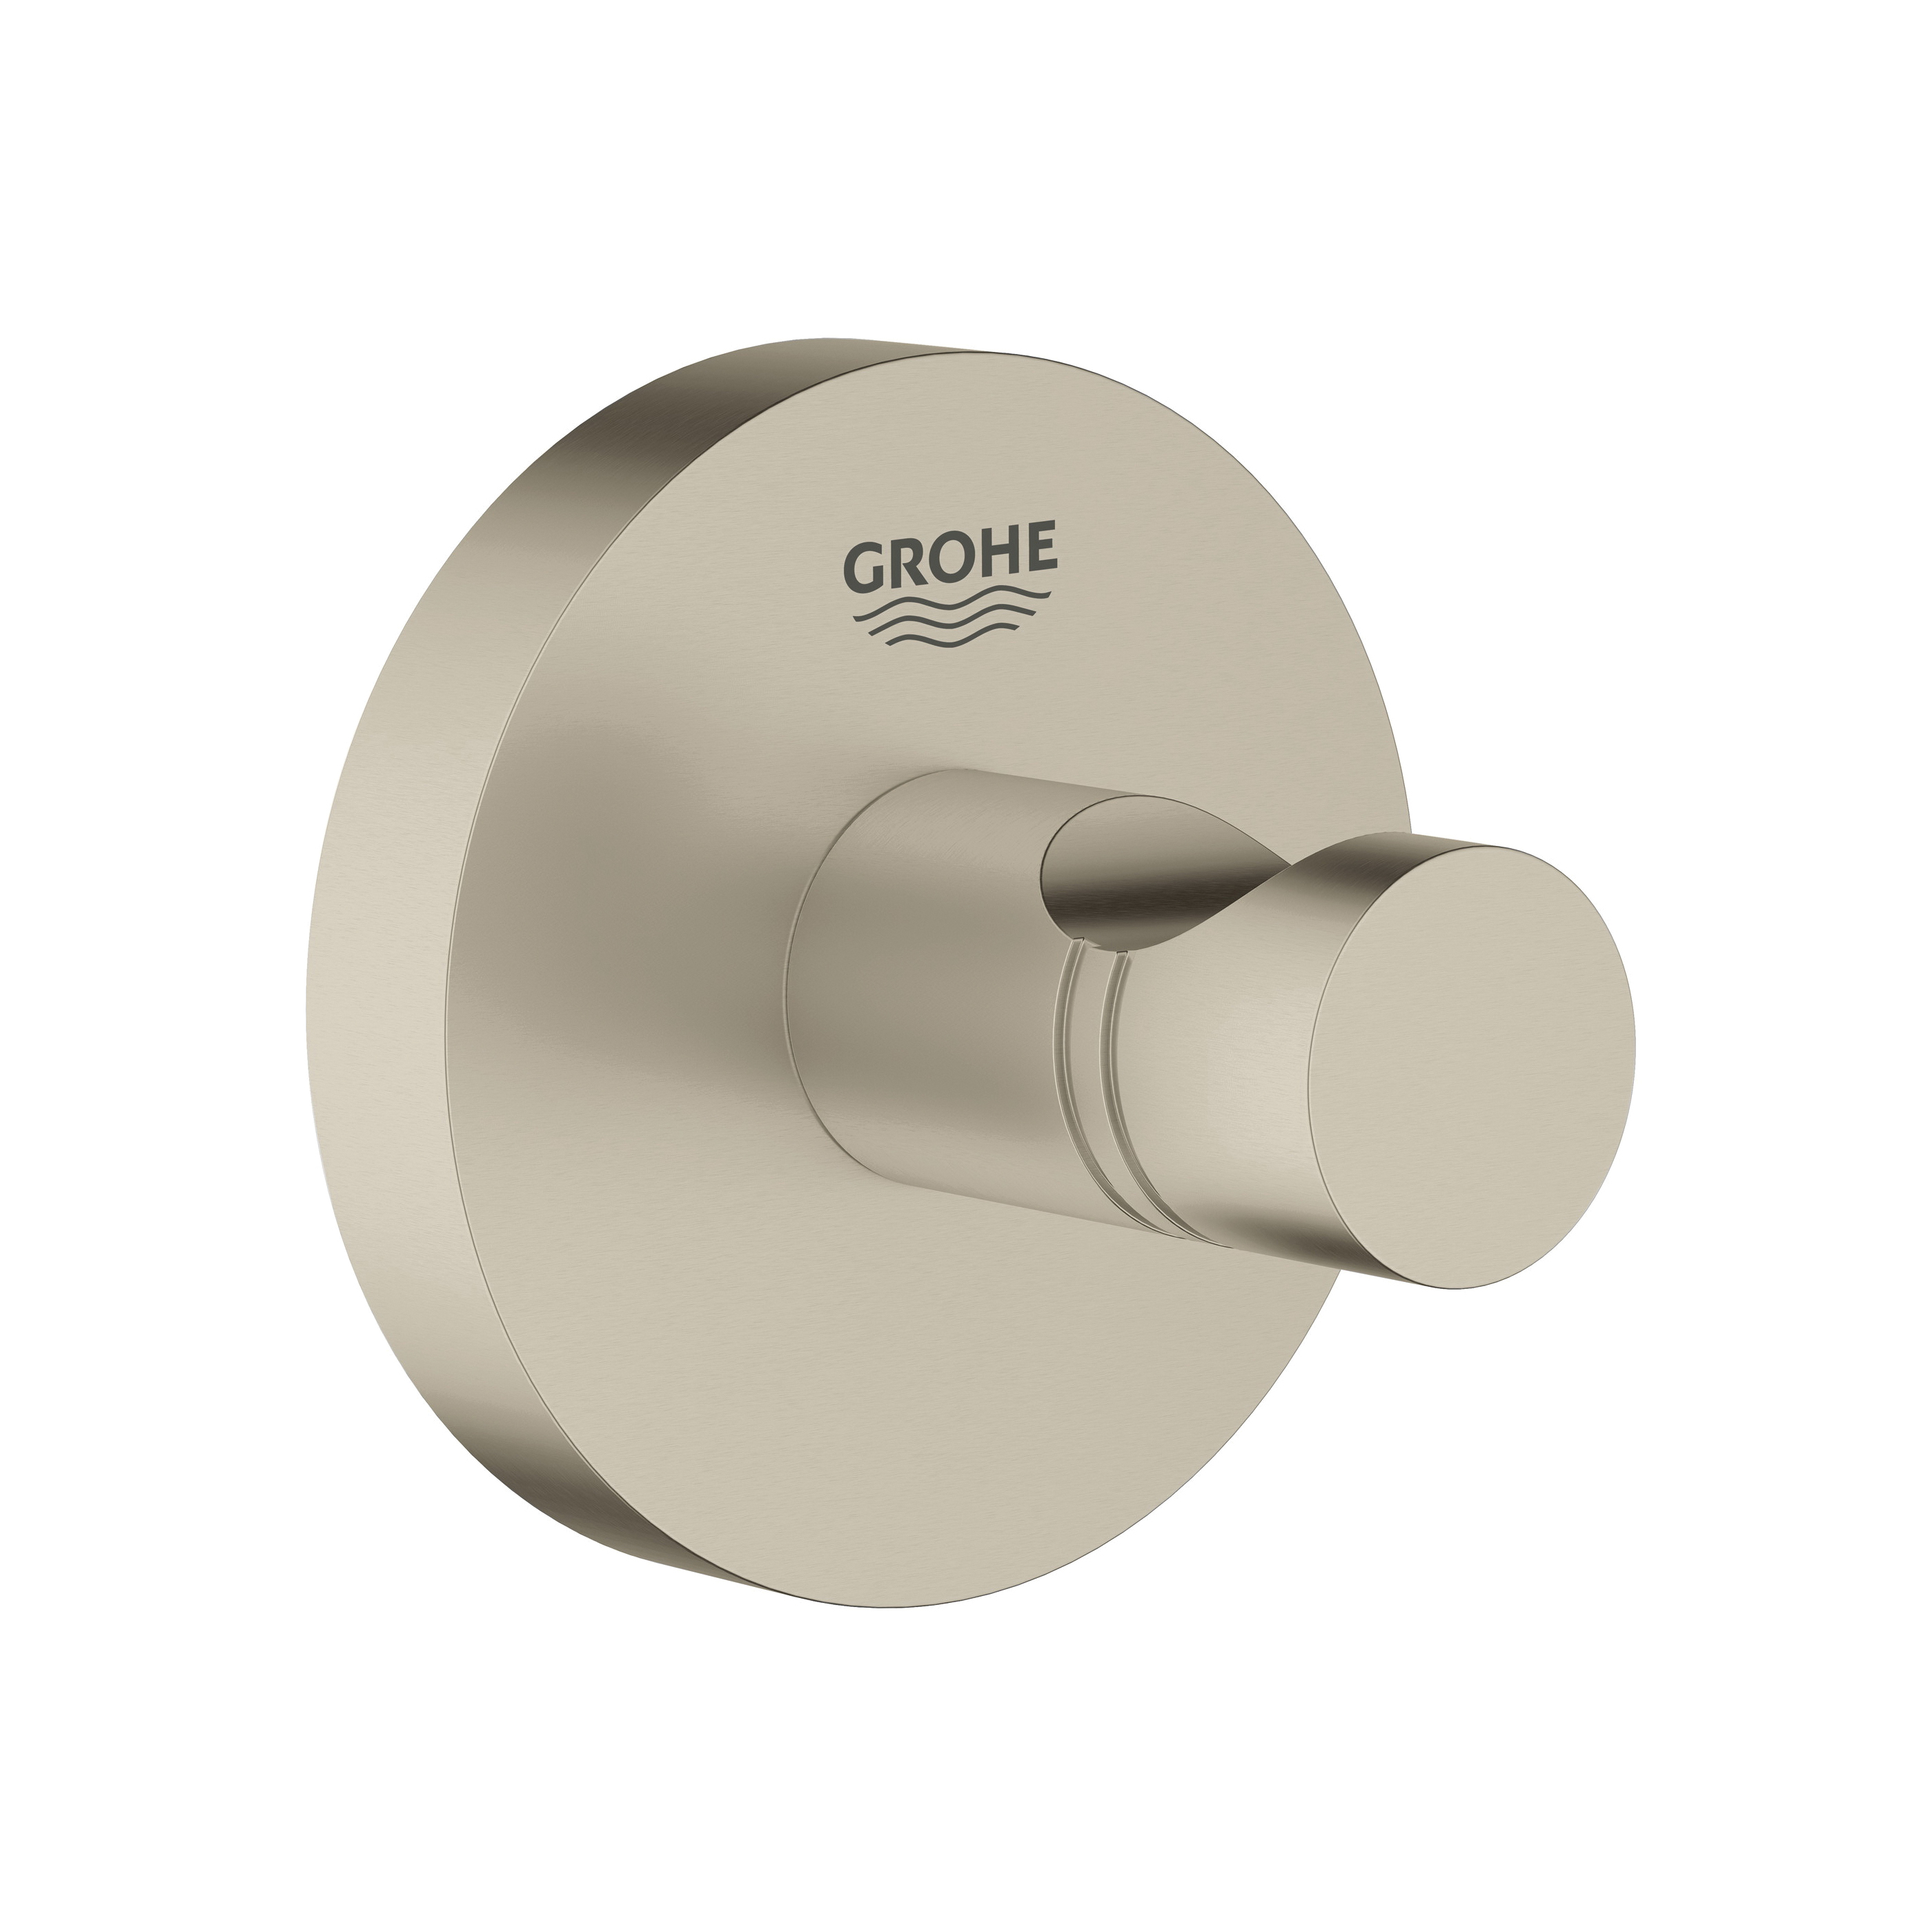 GROHE 40364EN1 Essentials Robe Hook, 1-3/4 in L x 2-1/8 in H, 1 Hook, Import